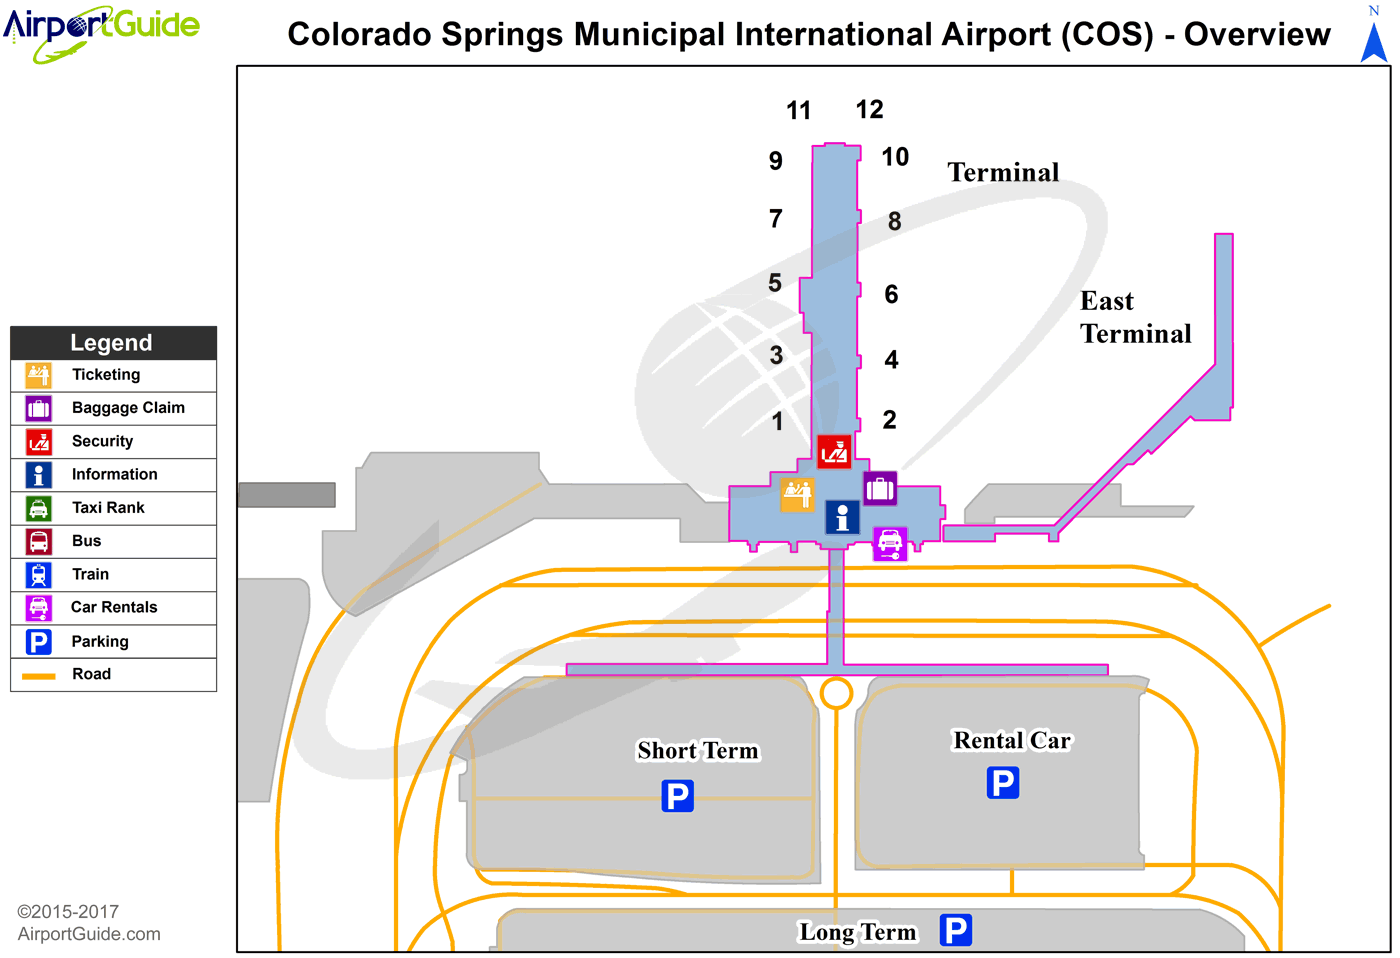 Colorado Springs - City Of Colorado Springs Municipal (COS) Airport Terminal Map - Overview